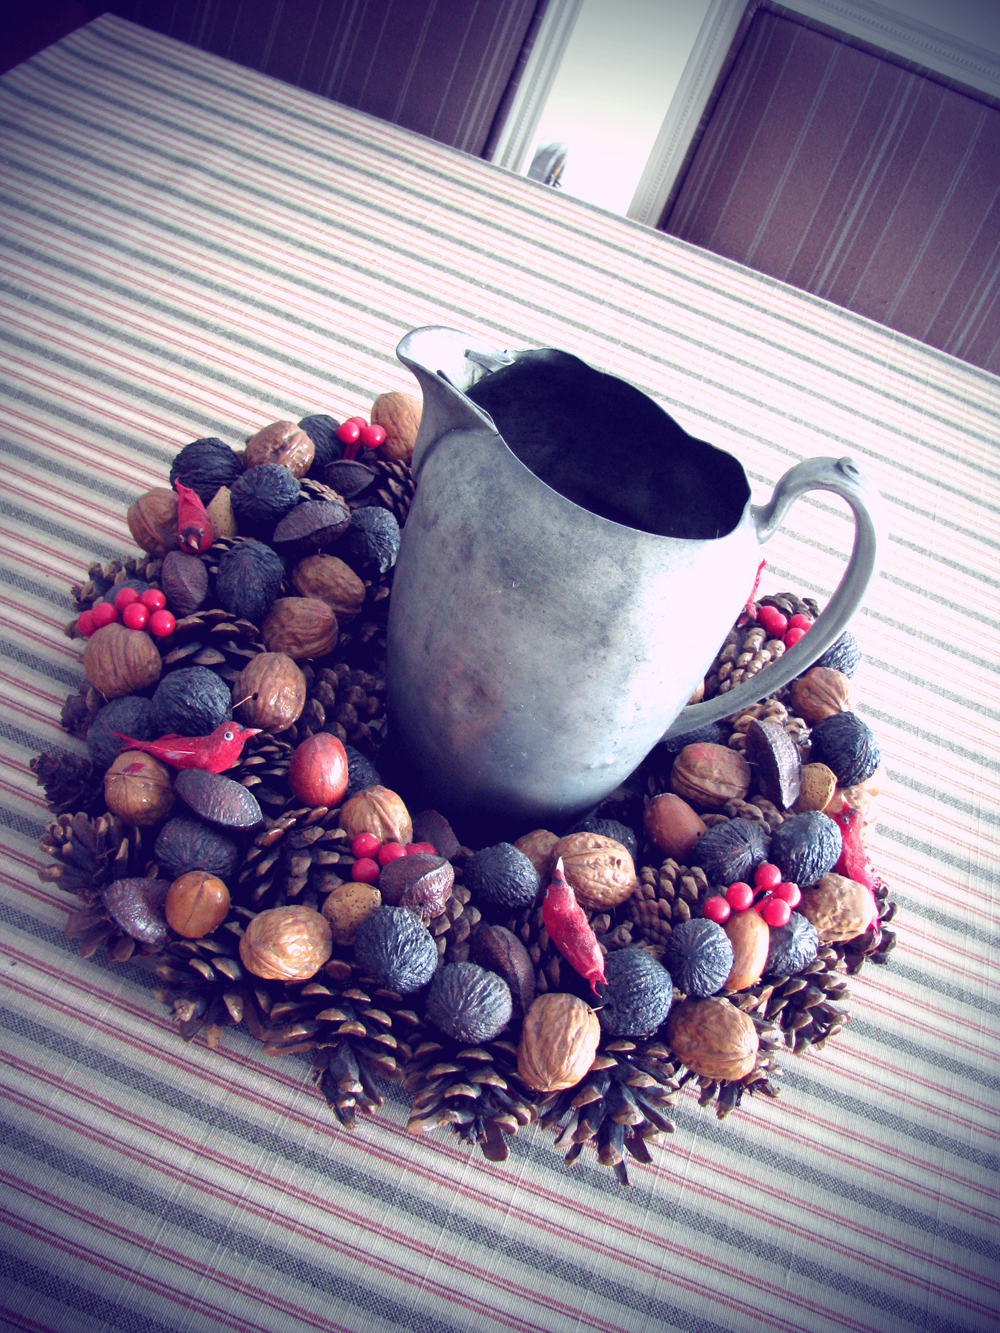 winter interior decorating: pewter jug with pine cone and nut wreath